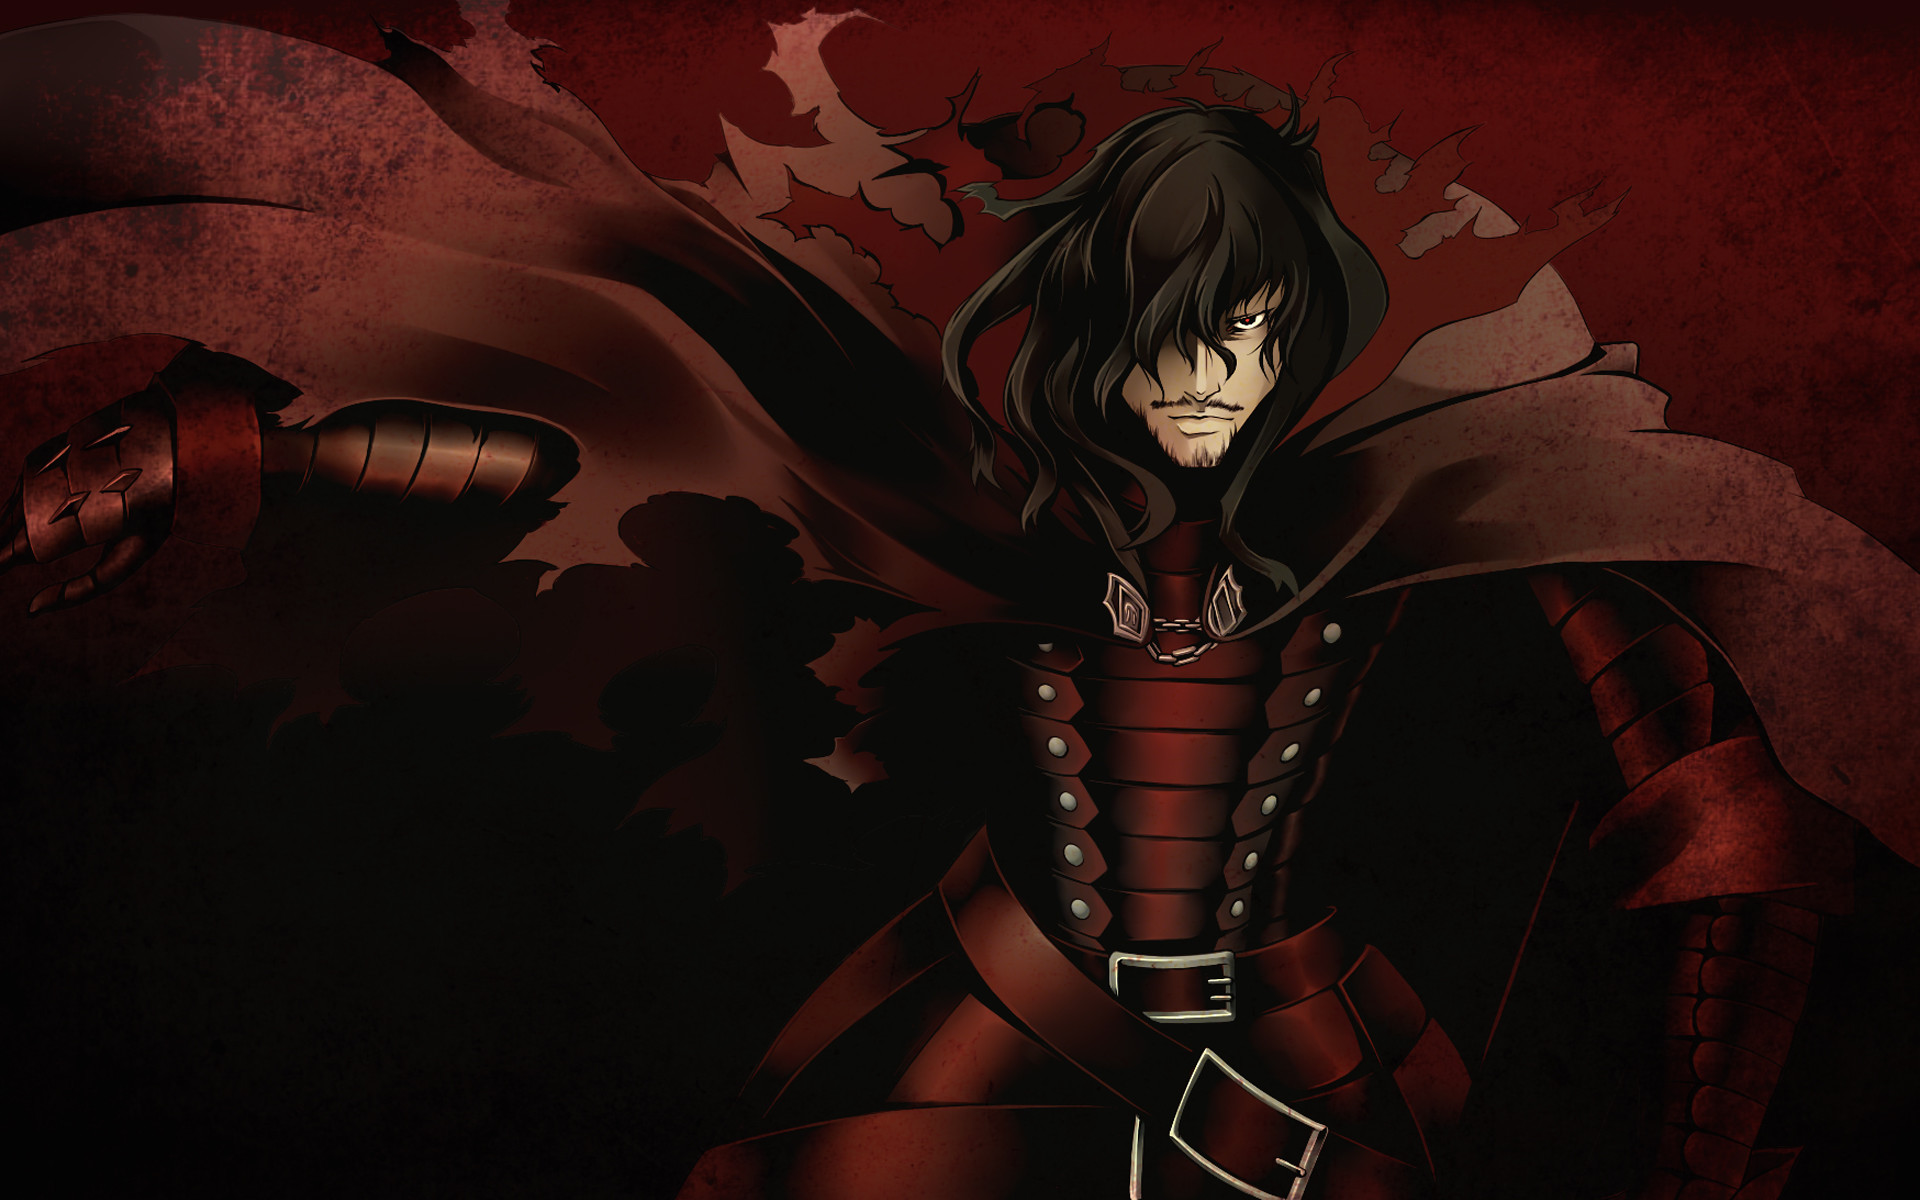 hellsing ultimate coloring pages – Google Search | Sick Hellsing Images! |  Pinterest